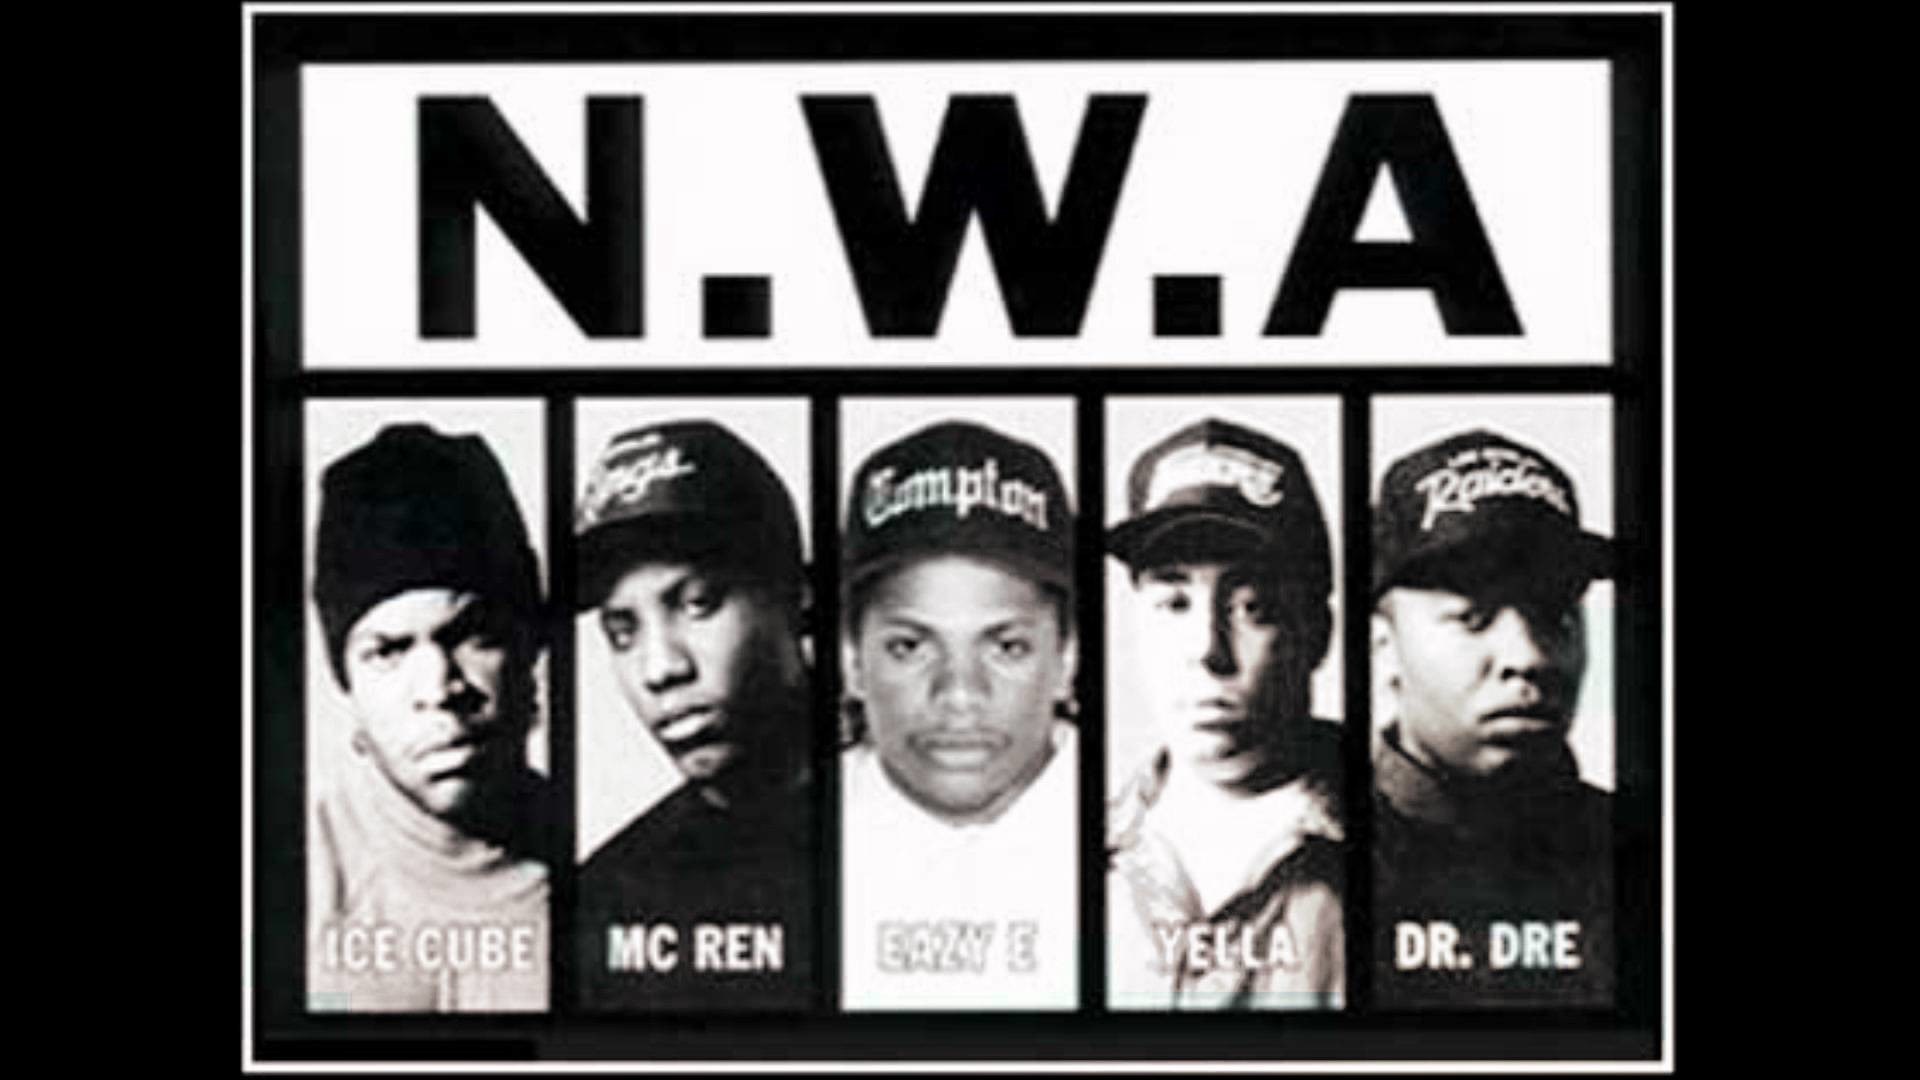 1920x1080 Images For > Ice Cube Nwa Wallpaper